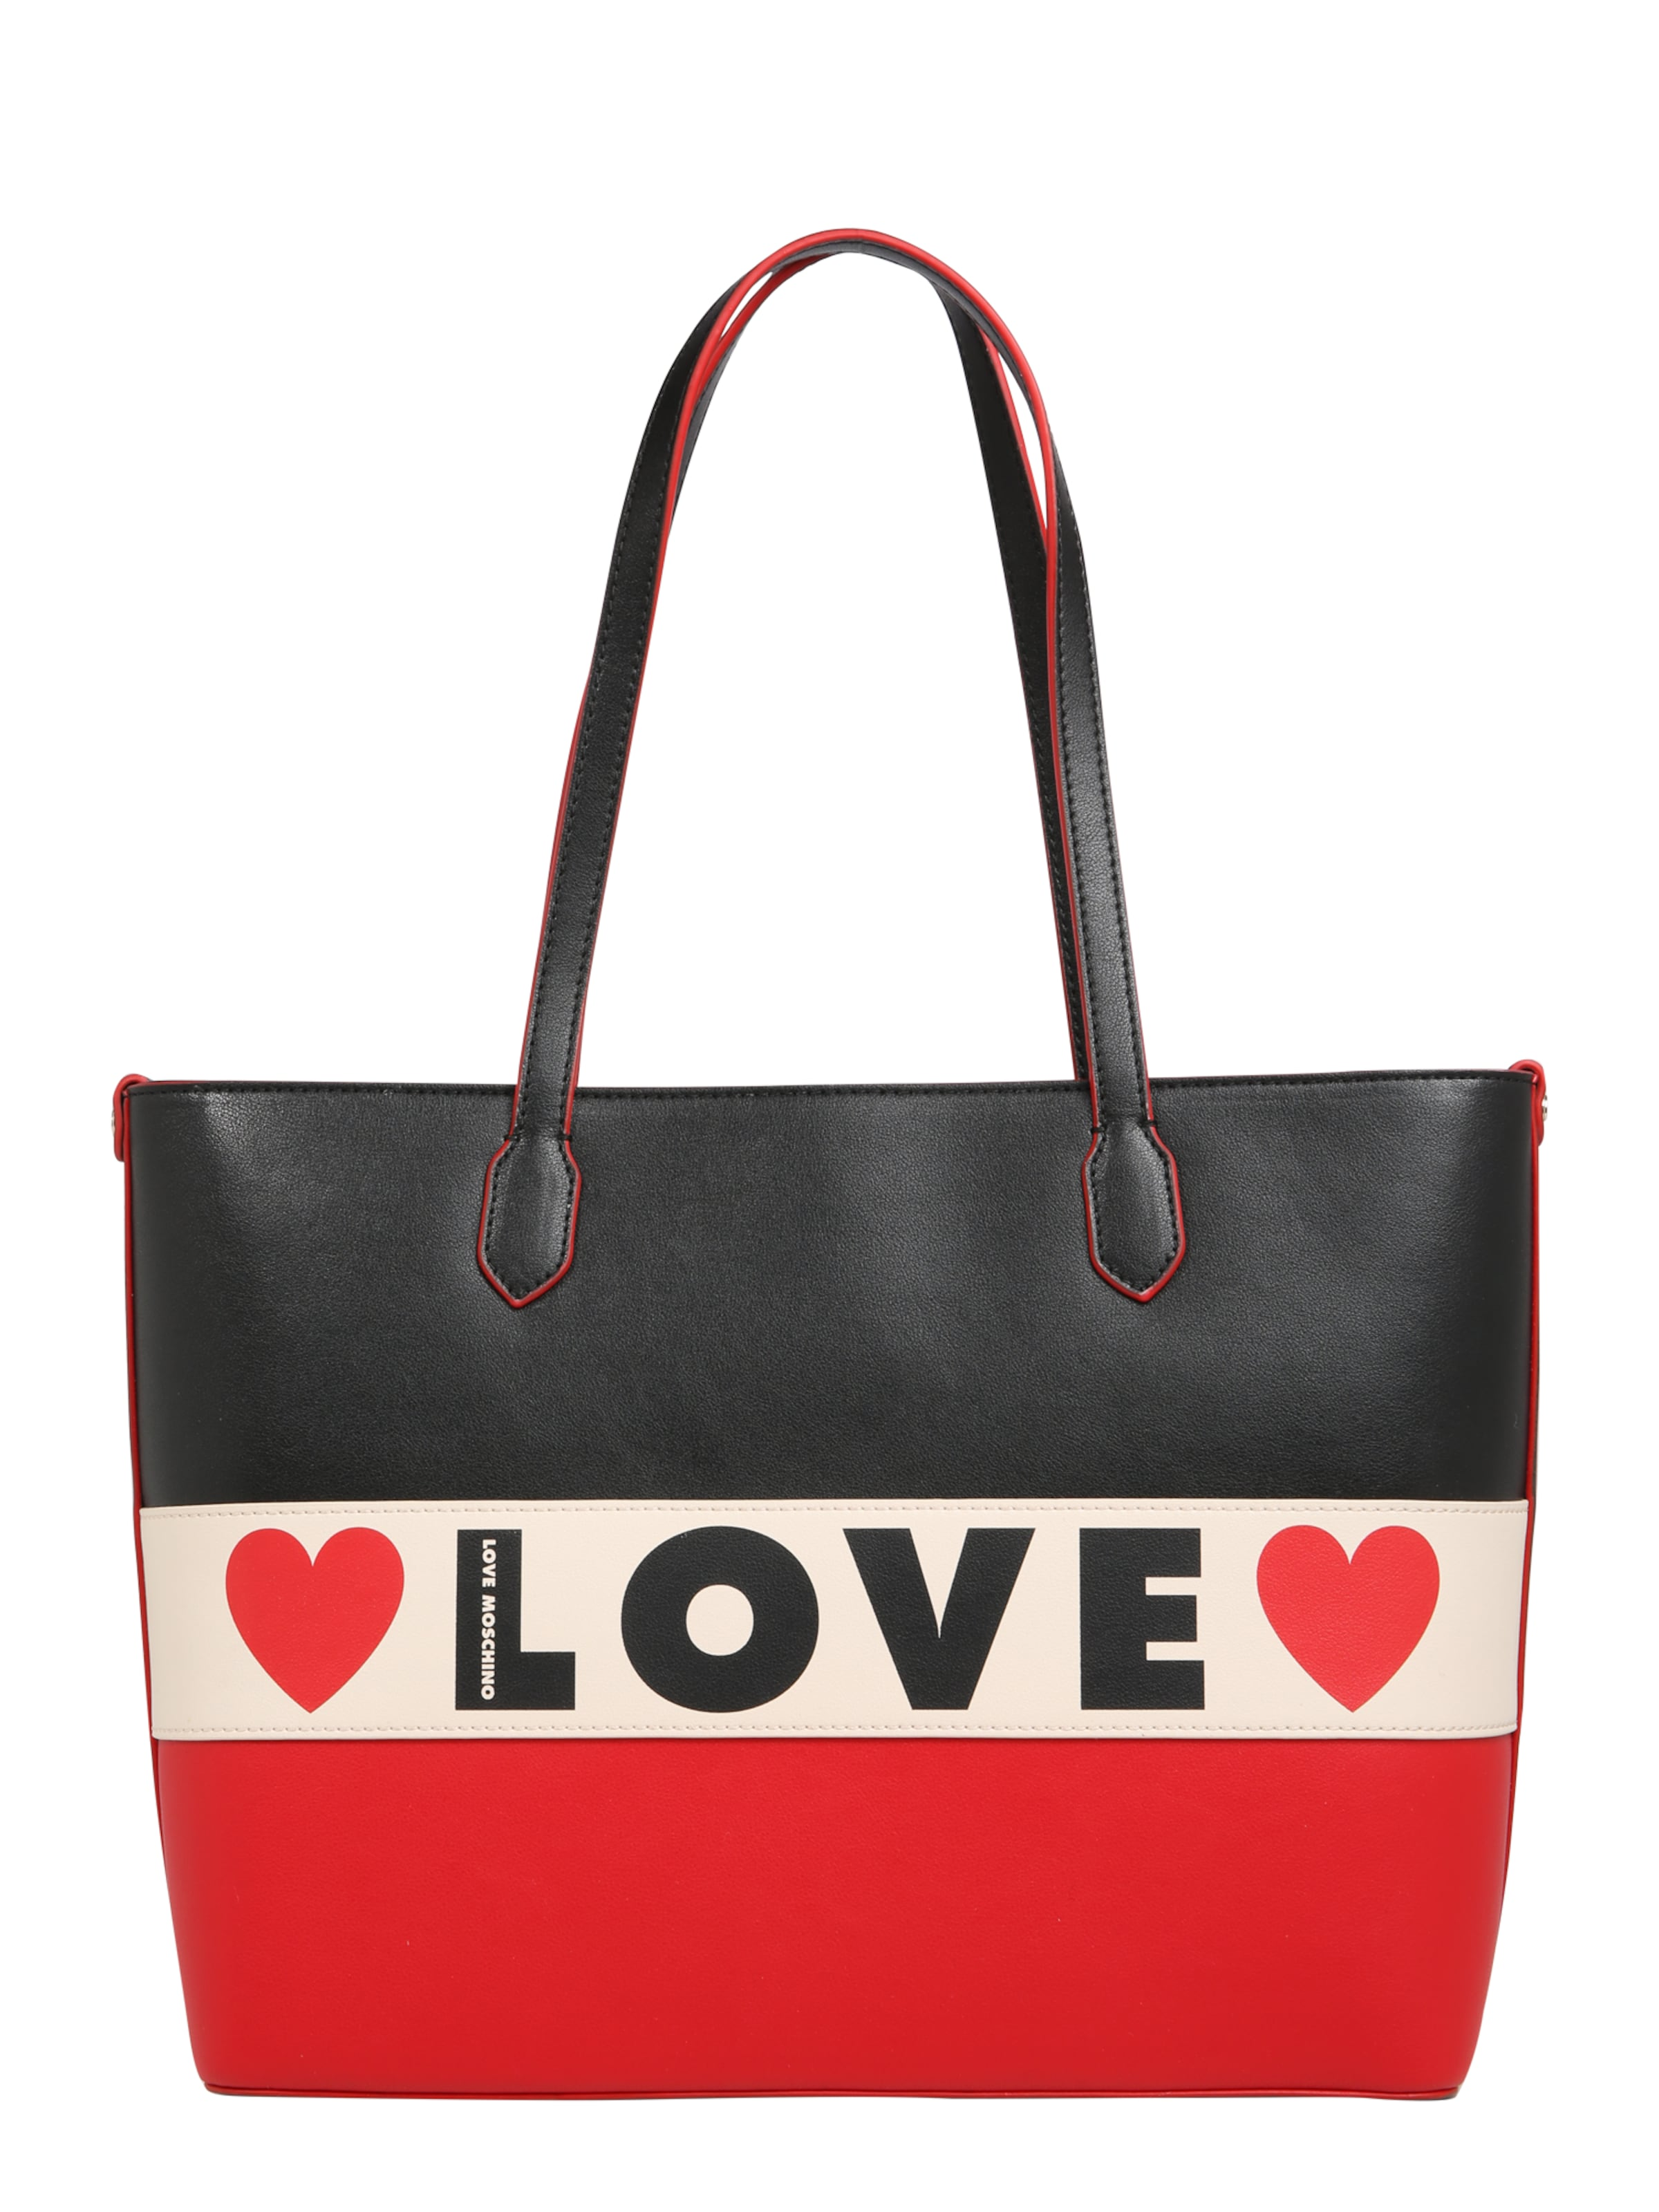 Small Cabas En Love Noir 'borsa Grain' Moschino BeigeRouge 1uFKTlcJ3